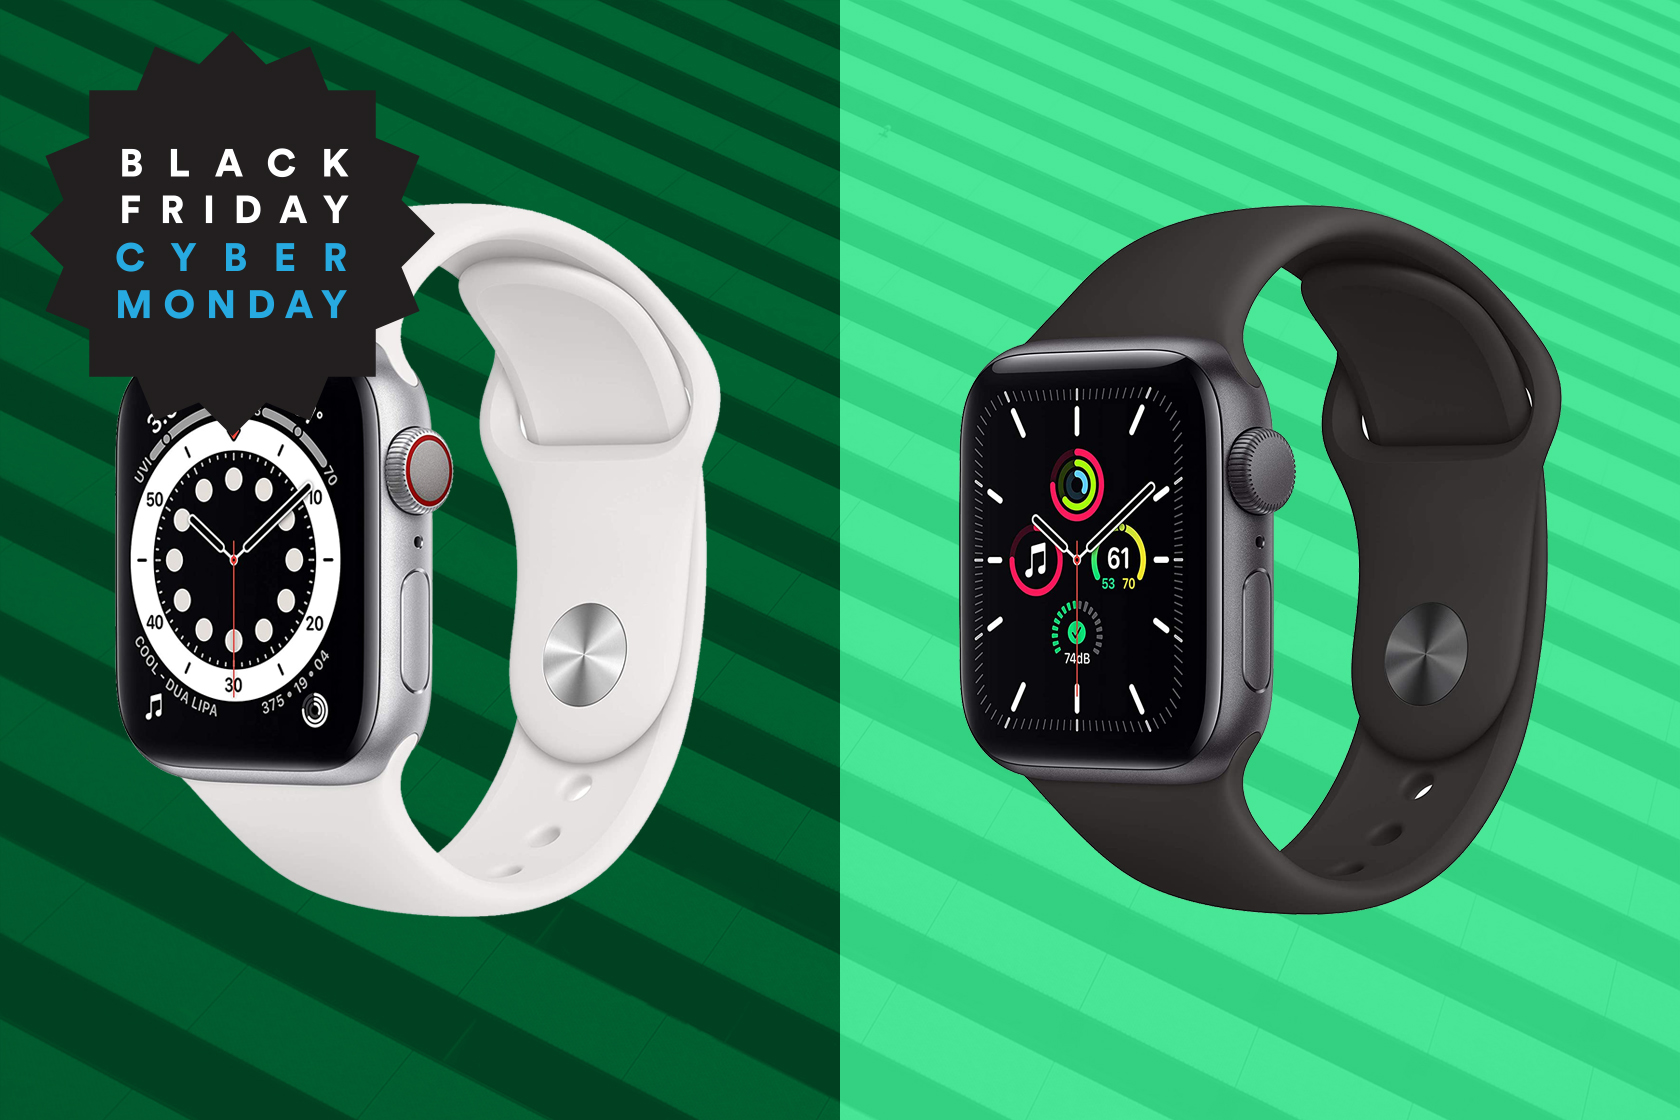 Amazon has the Apple Watch Series 6 for its lowest price so far